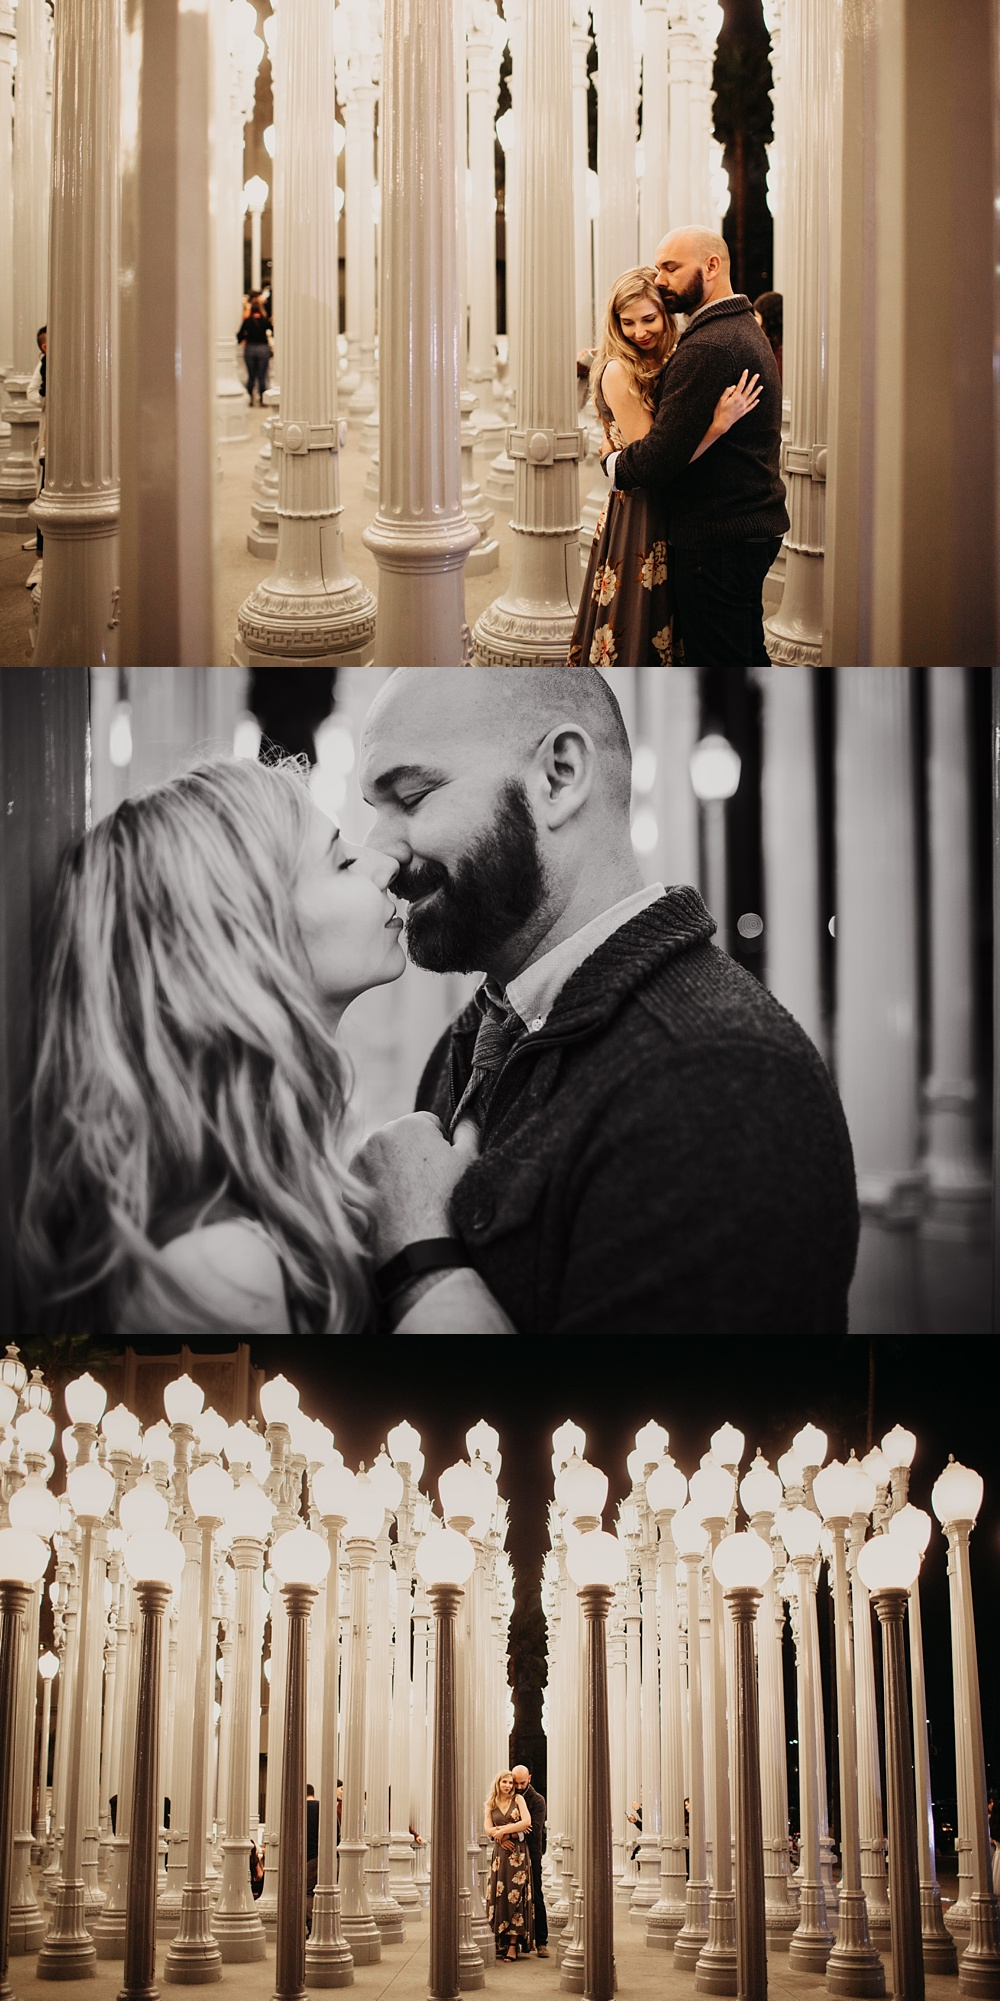 Wedding photographer Los Angeles LACMA